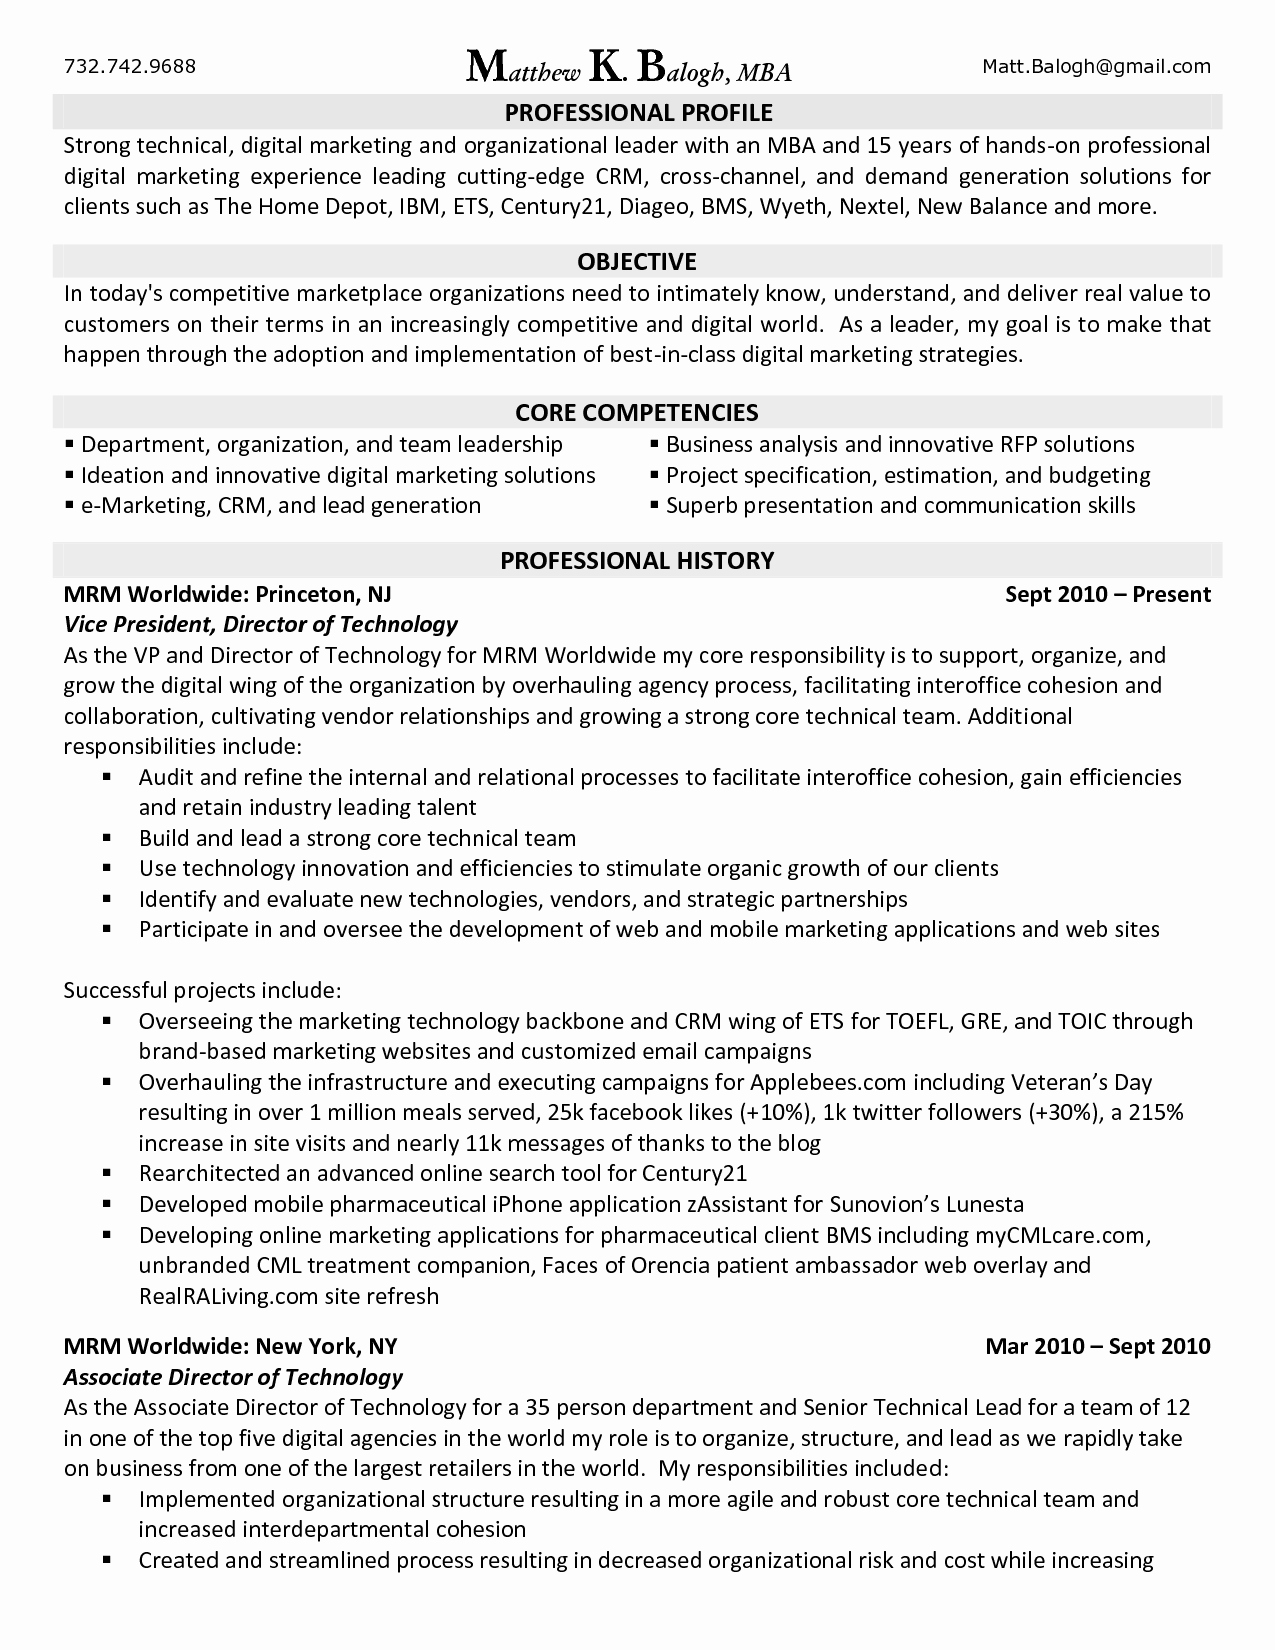 Resume Objective Marketing Cover Letter Samples Cover